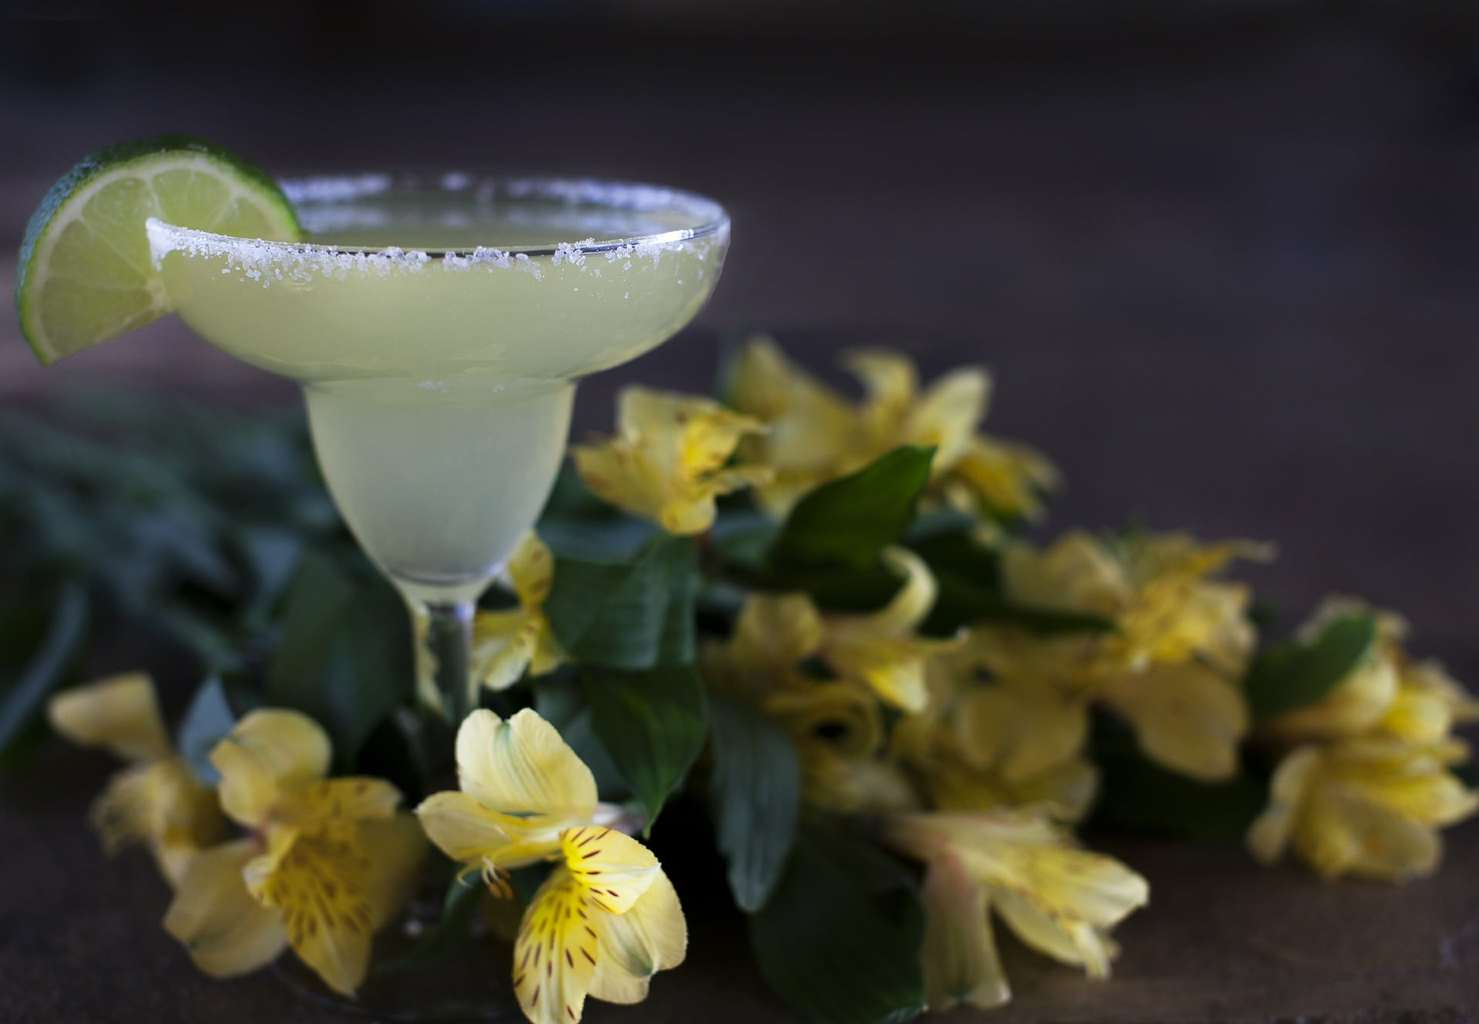 A traditional margarita is made with tequila, lemon juice and triple sec